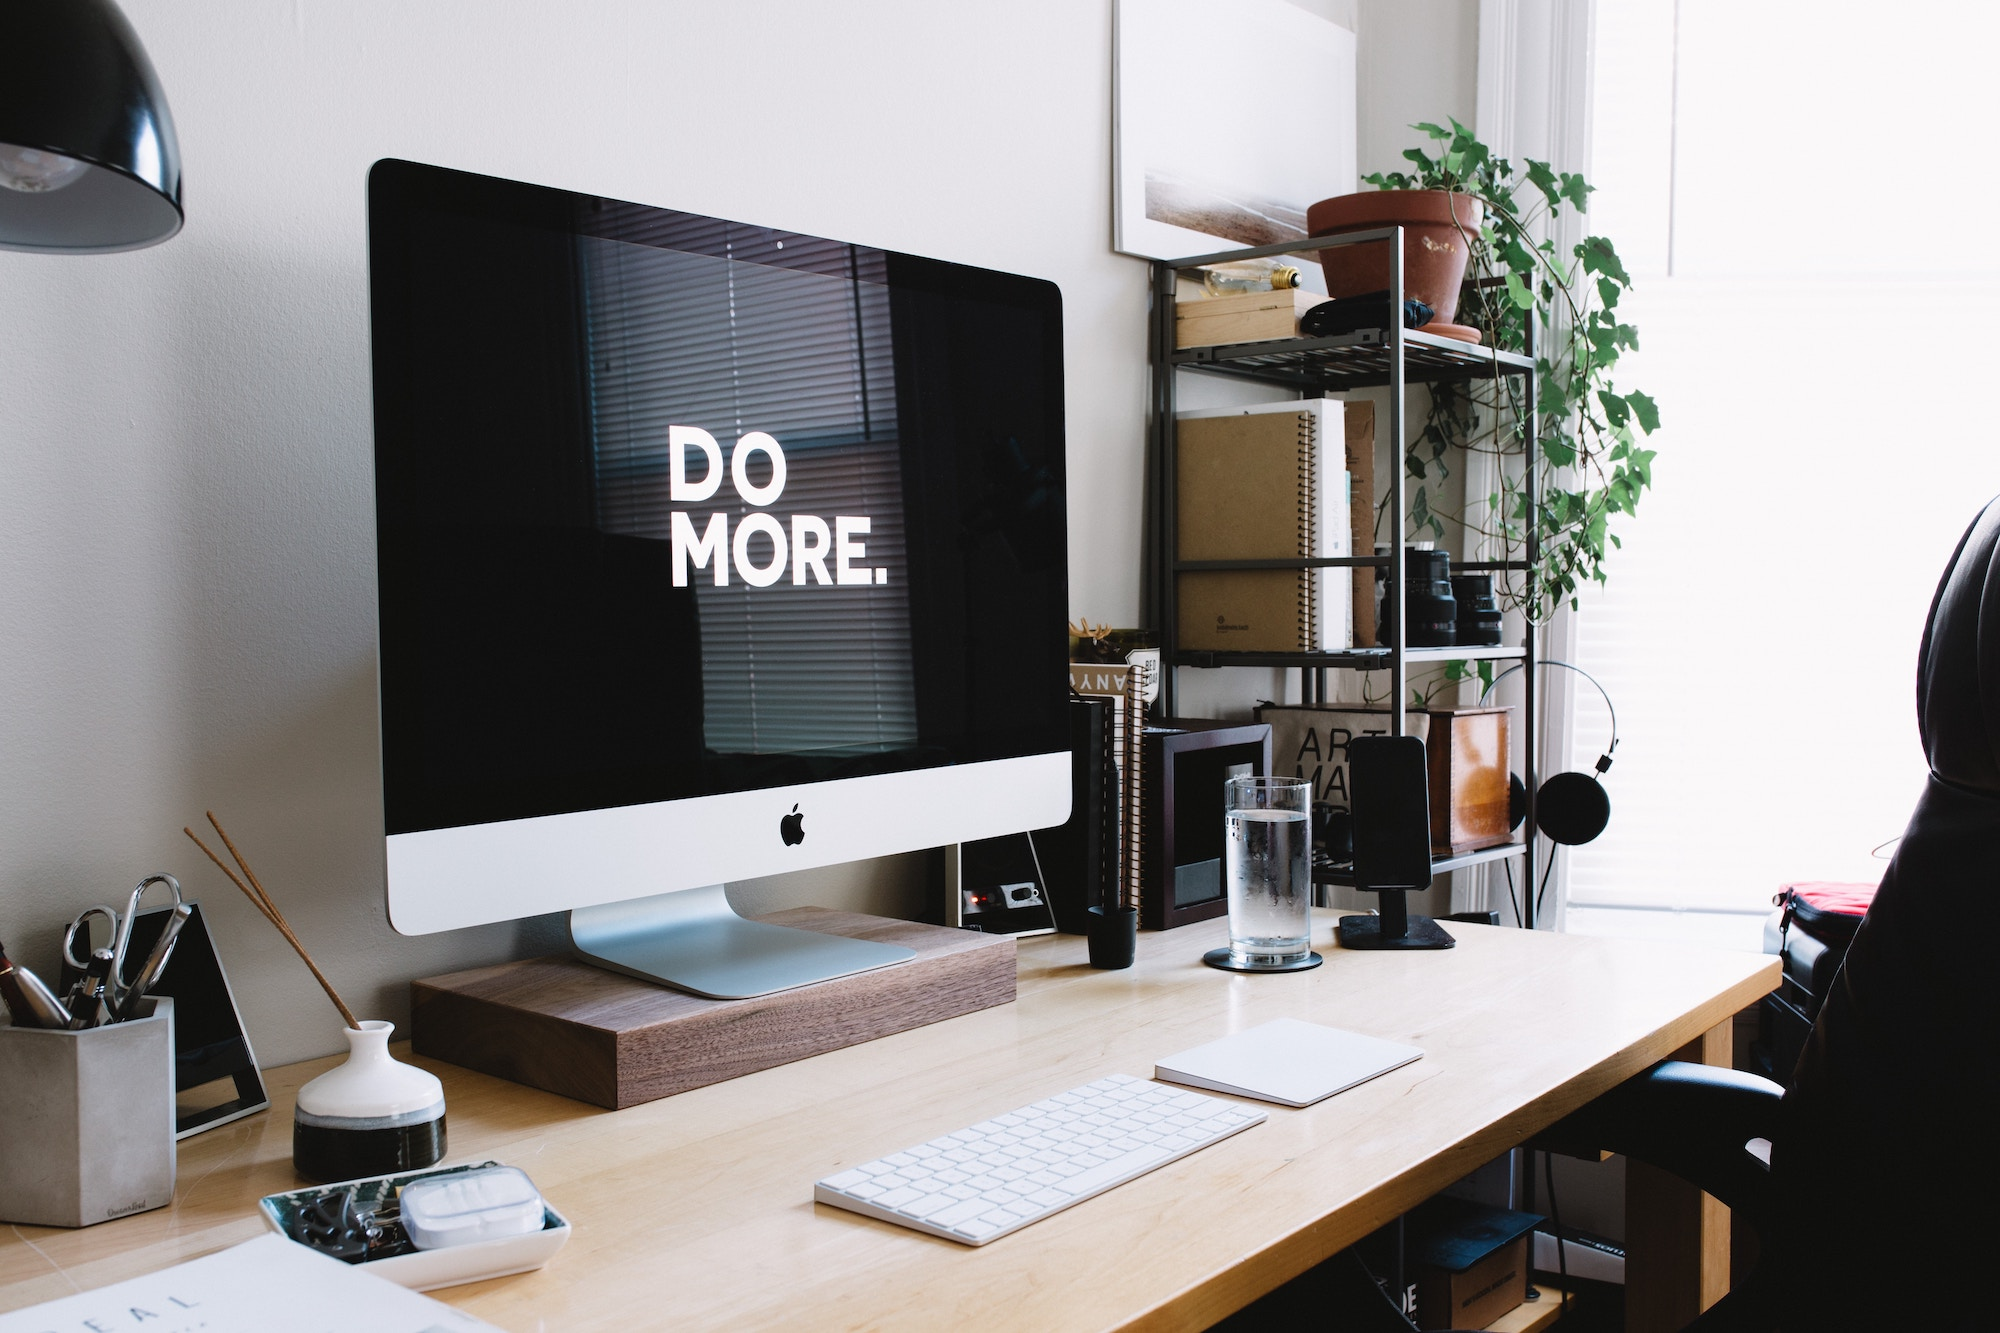 8 Effective Ways to Get More Out of Online Store